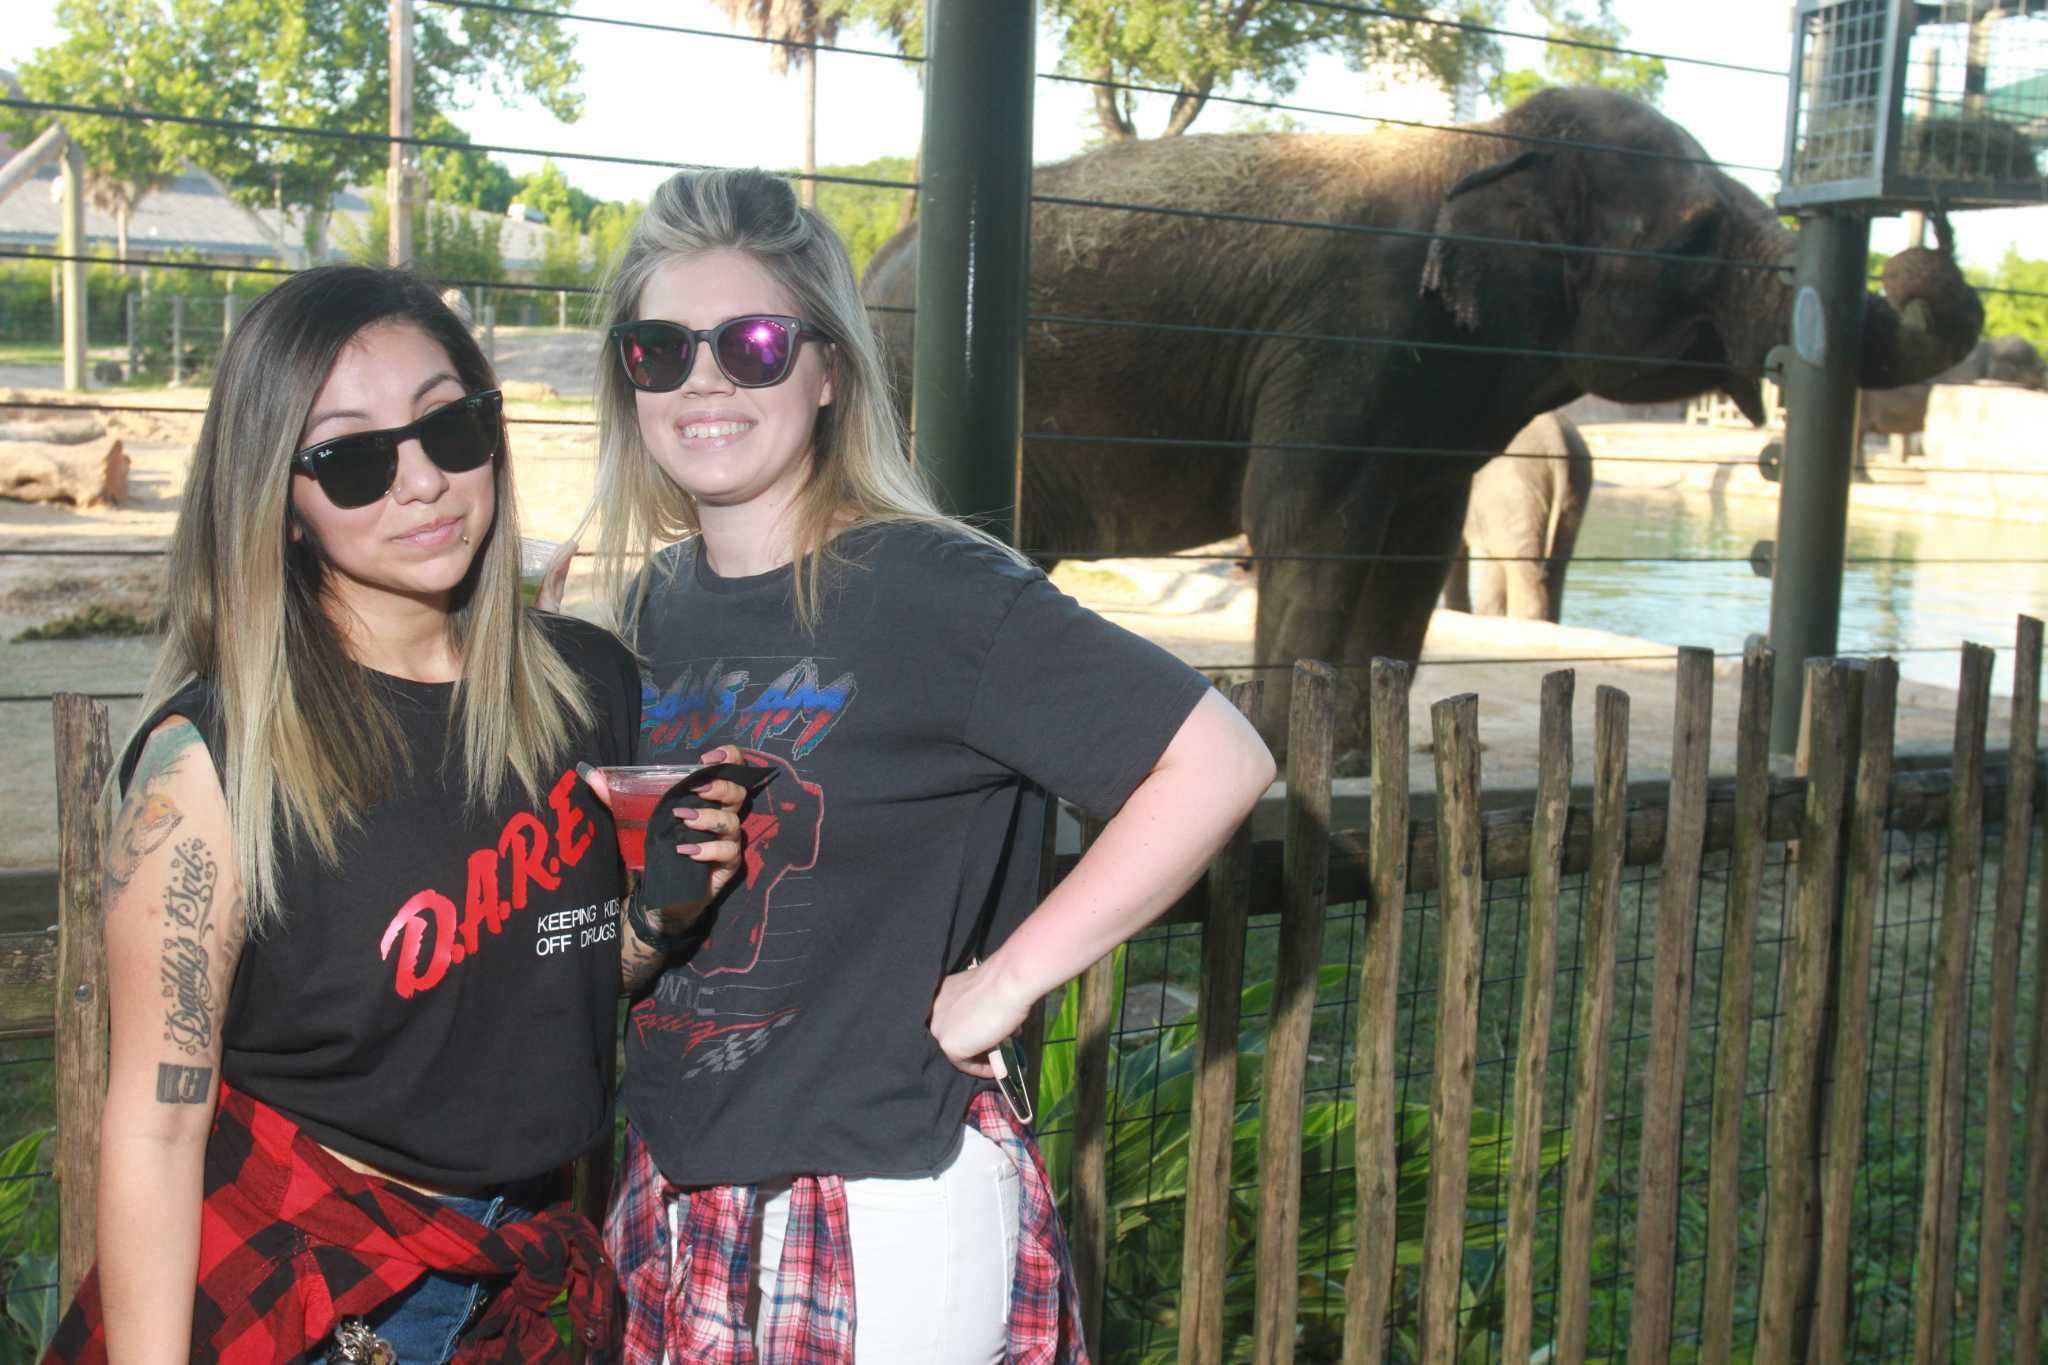 Partygoers celebrate the '90s at adult-only 'After Dark' event at Houston Zoo